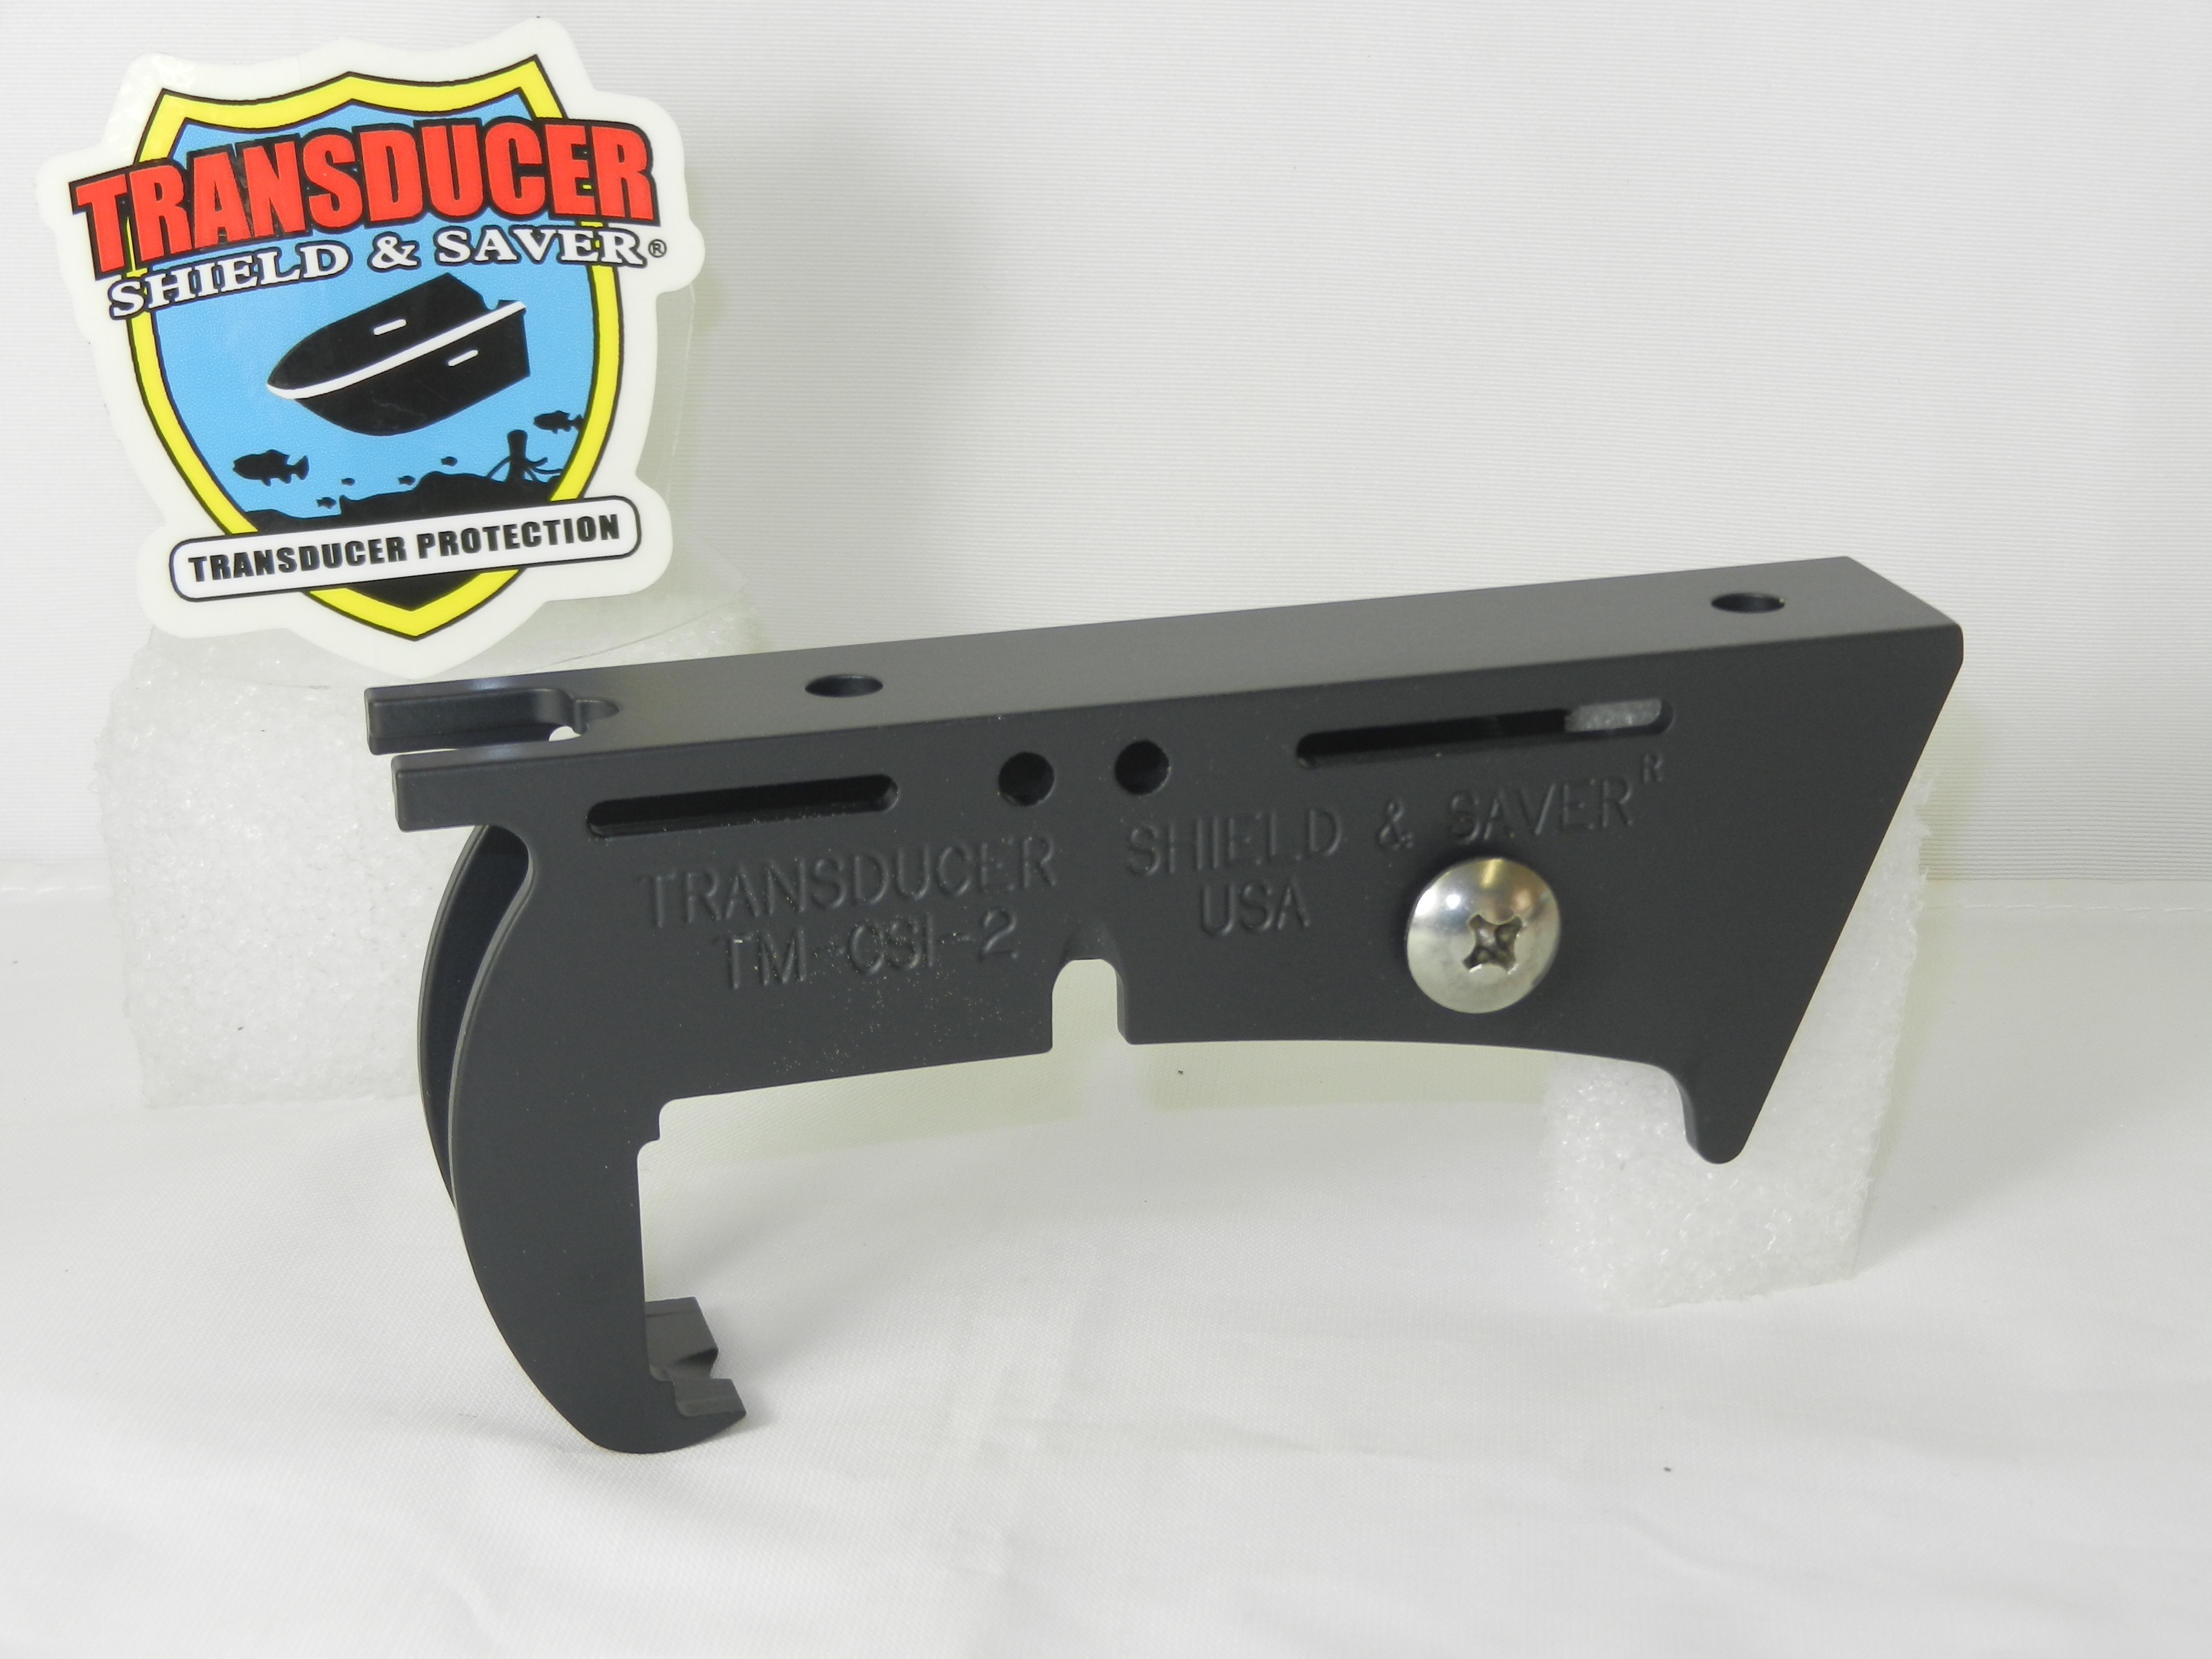 Transducer Shield And Saver Tm Csi 2 Fits Humminbird Side